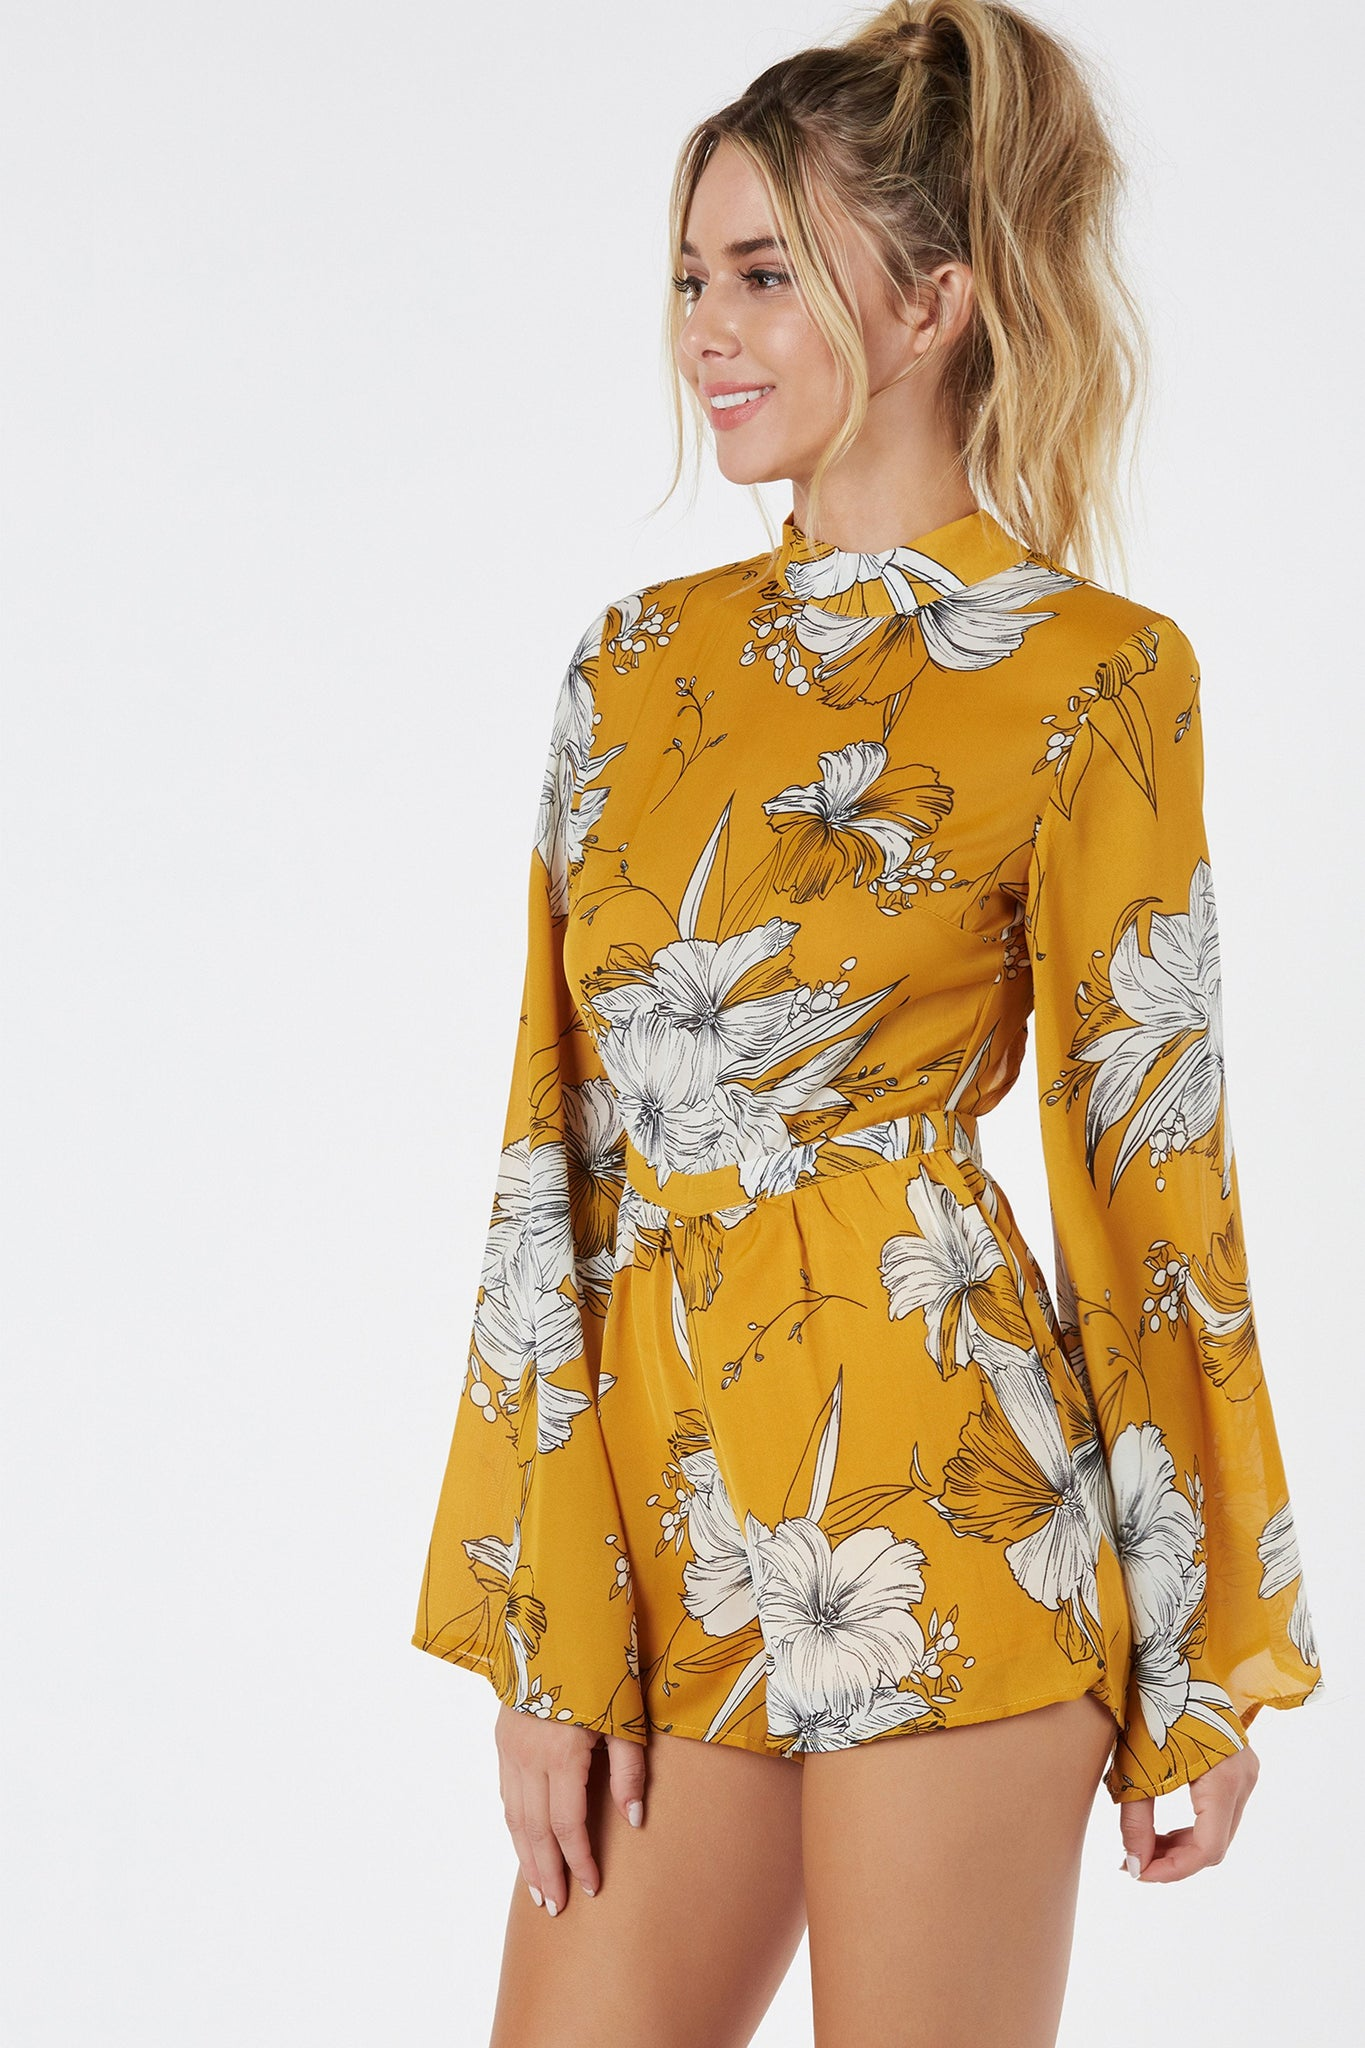 Chic bell sleeve chiffon romper with mock neckline. Floral print throughout with bold open back and ties for closure.